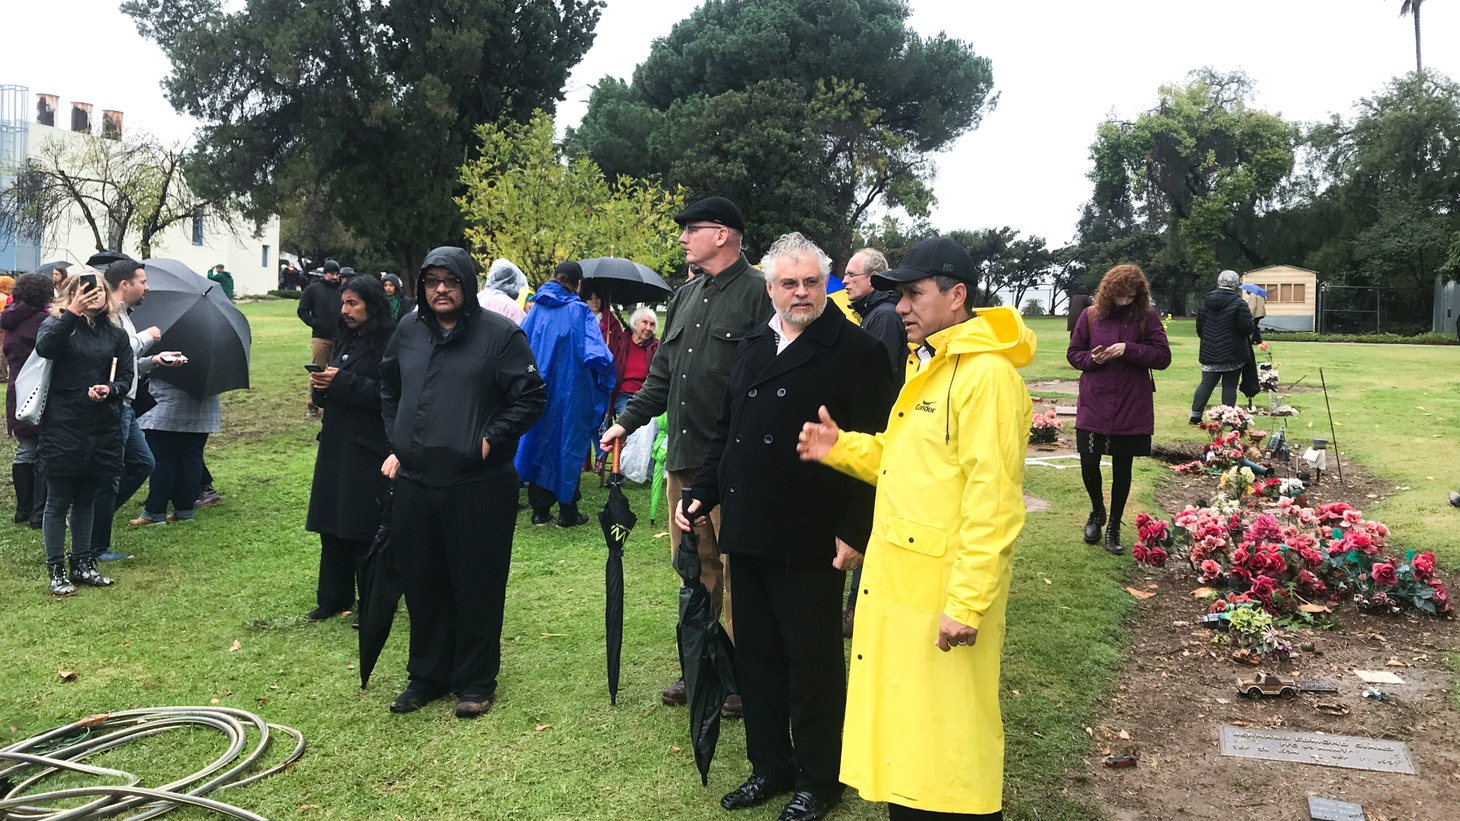 In spite of the rain, more than 100 people attended a memorial service at LA County Crematorium and Cemetery.